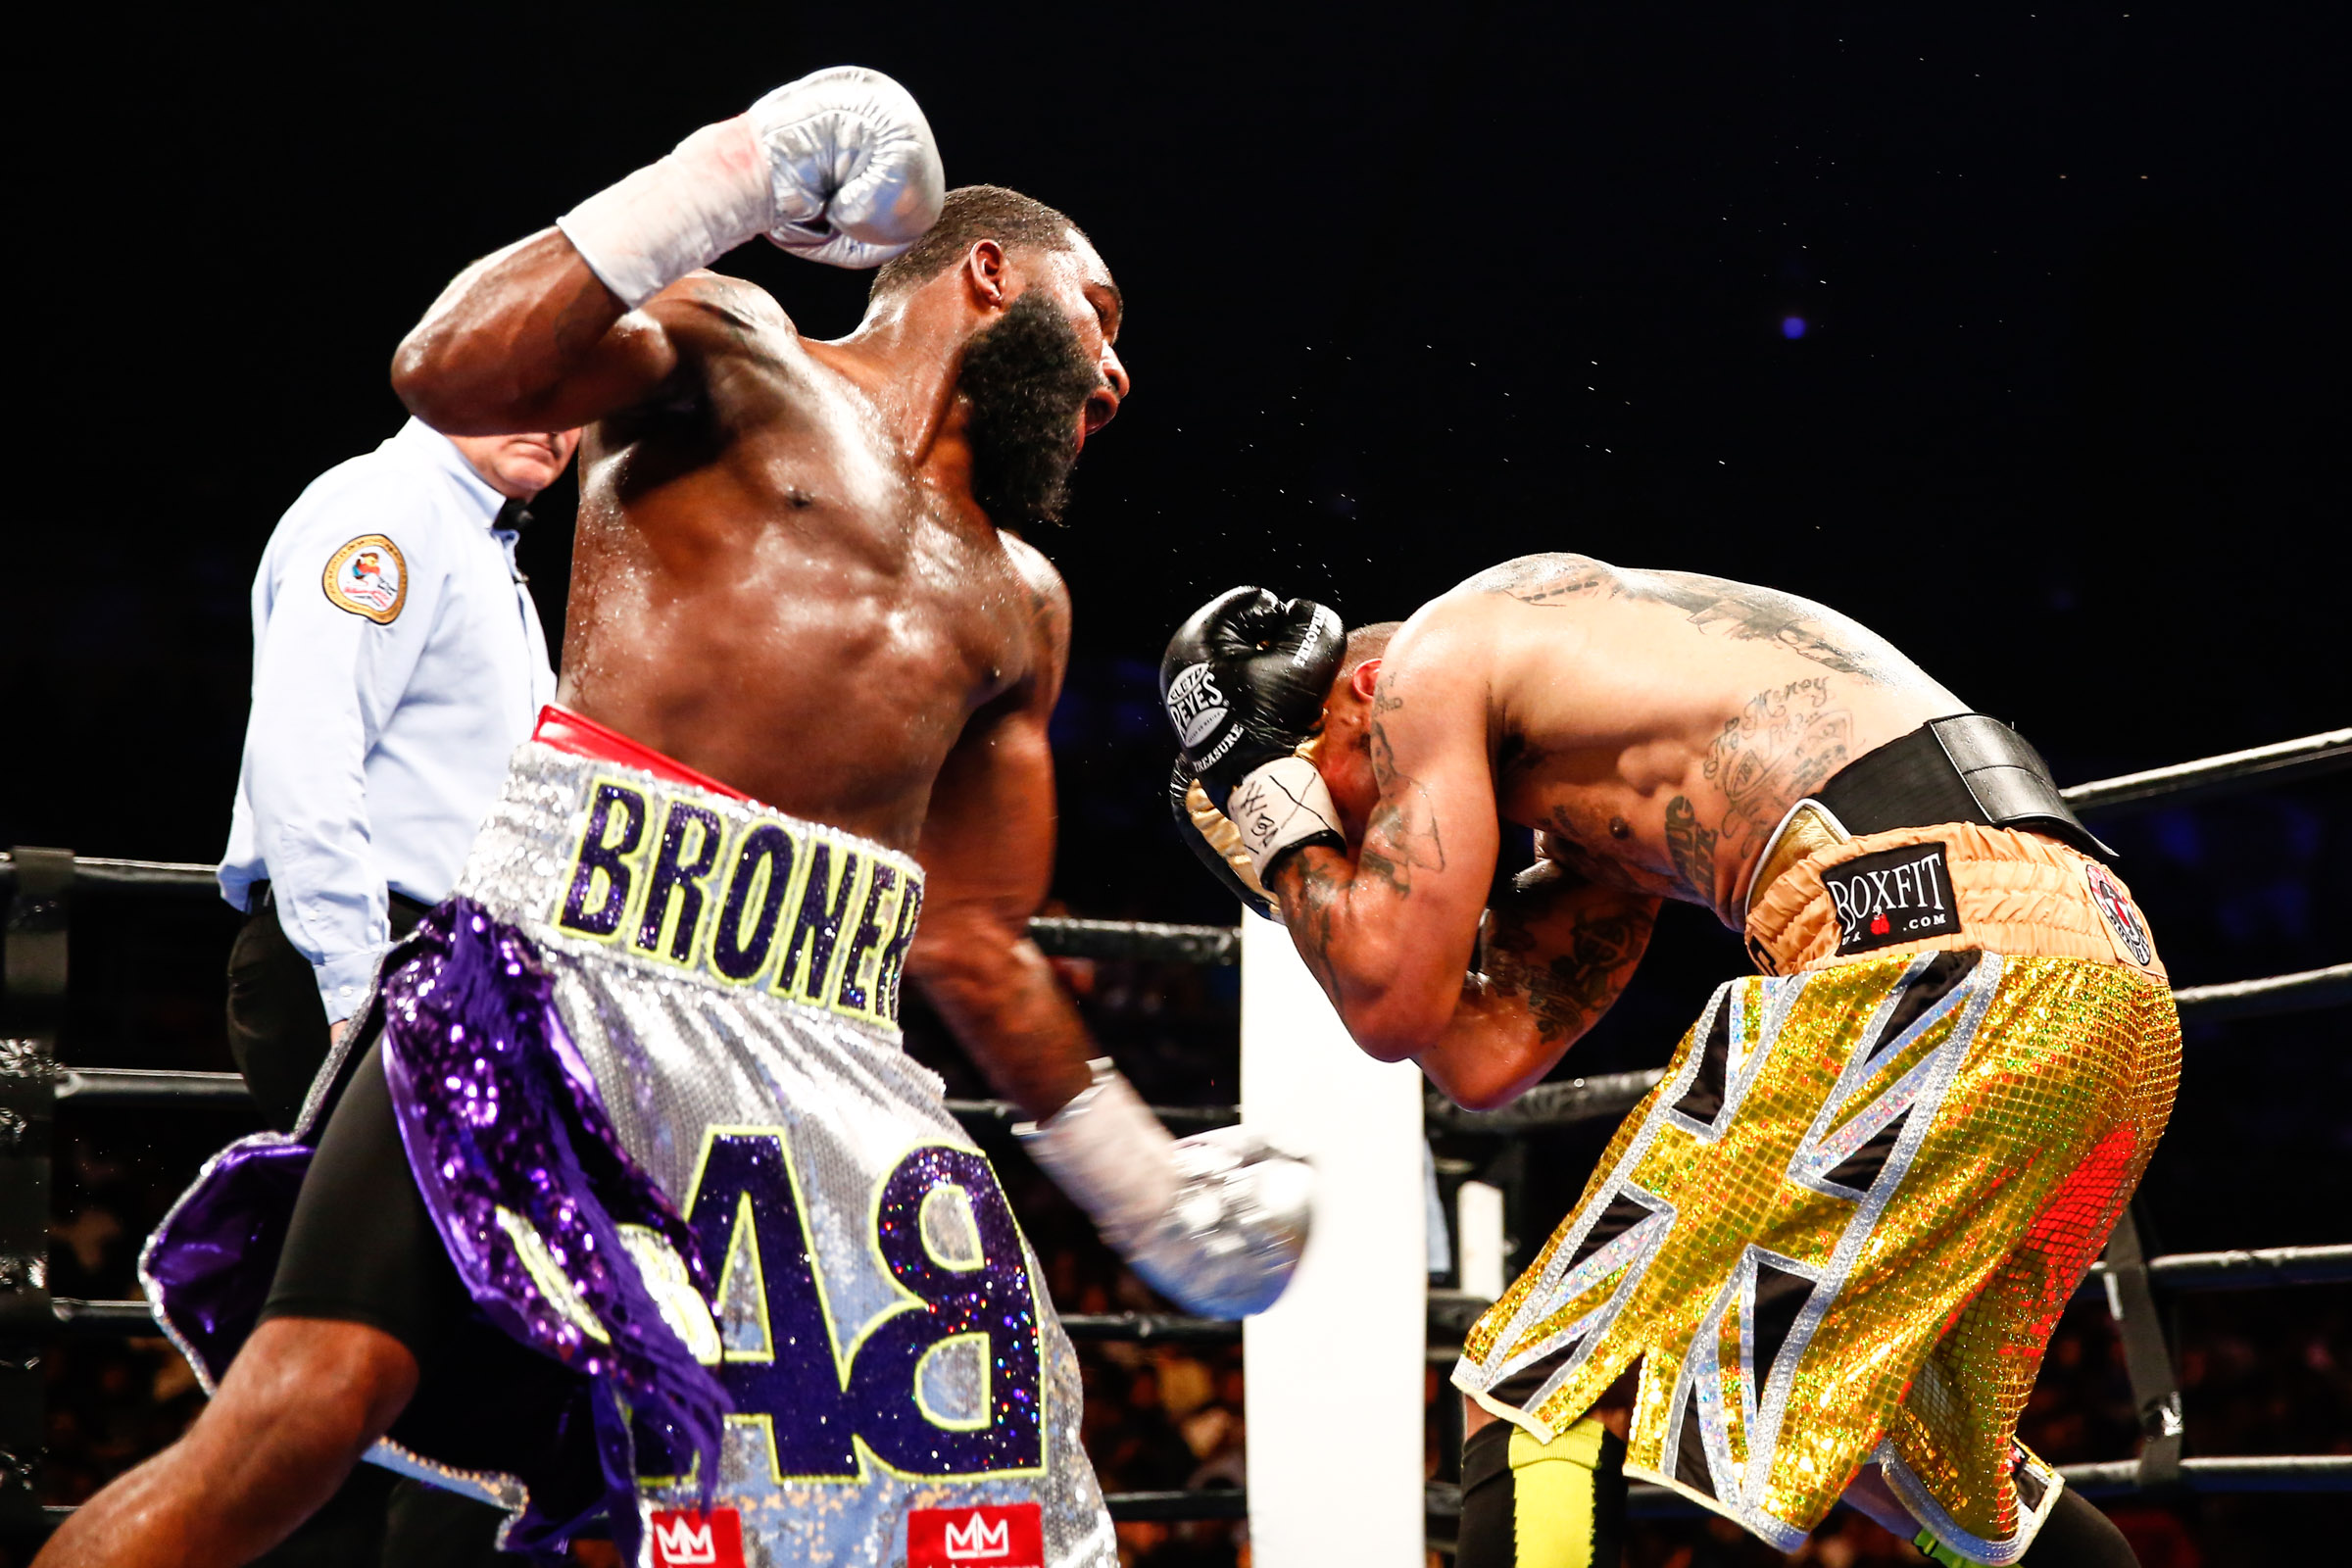 LR_FIGHT NIGHT-BRONER vs THEOPHANE-04012016-8466.jpg